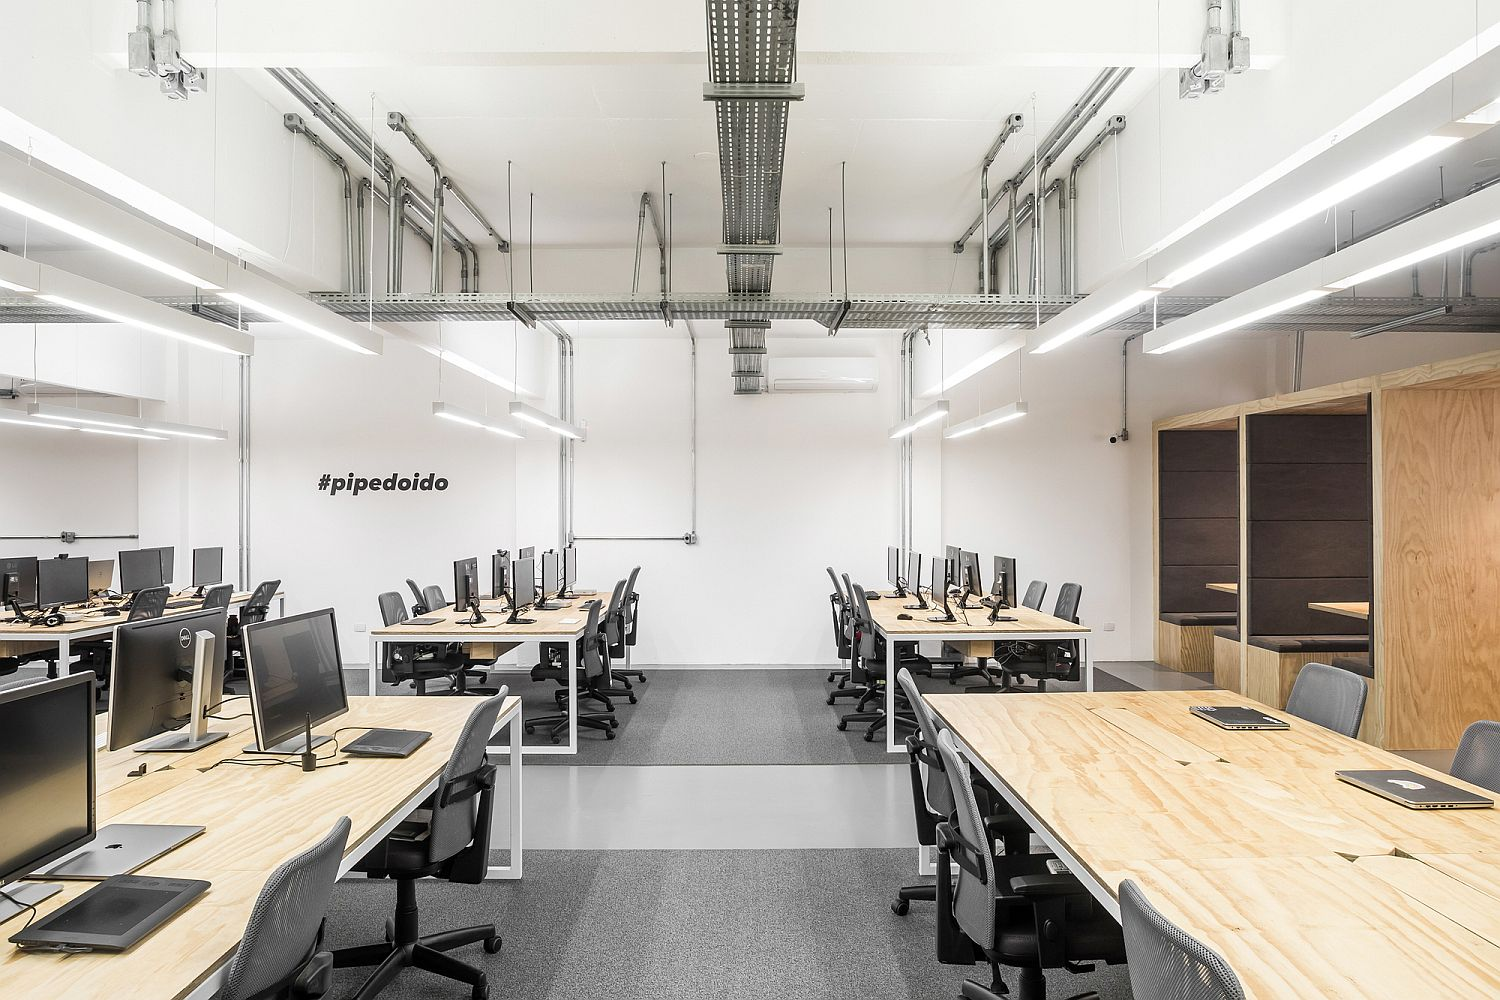 Exposed duct pipes and the flooring bring industrial charm to the modern workspace